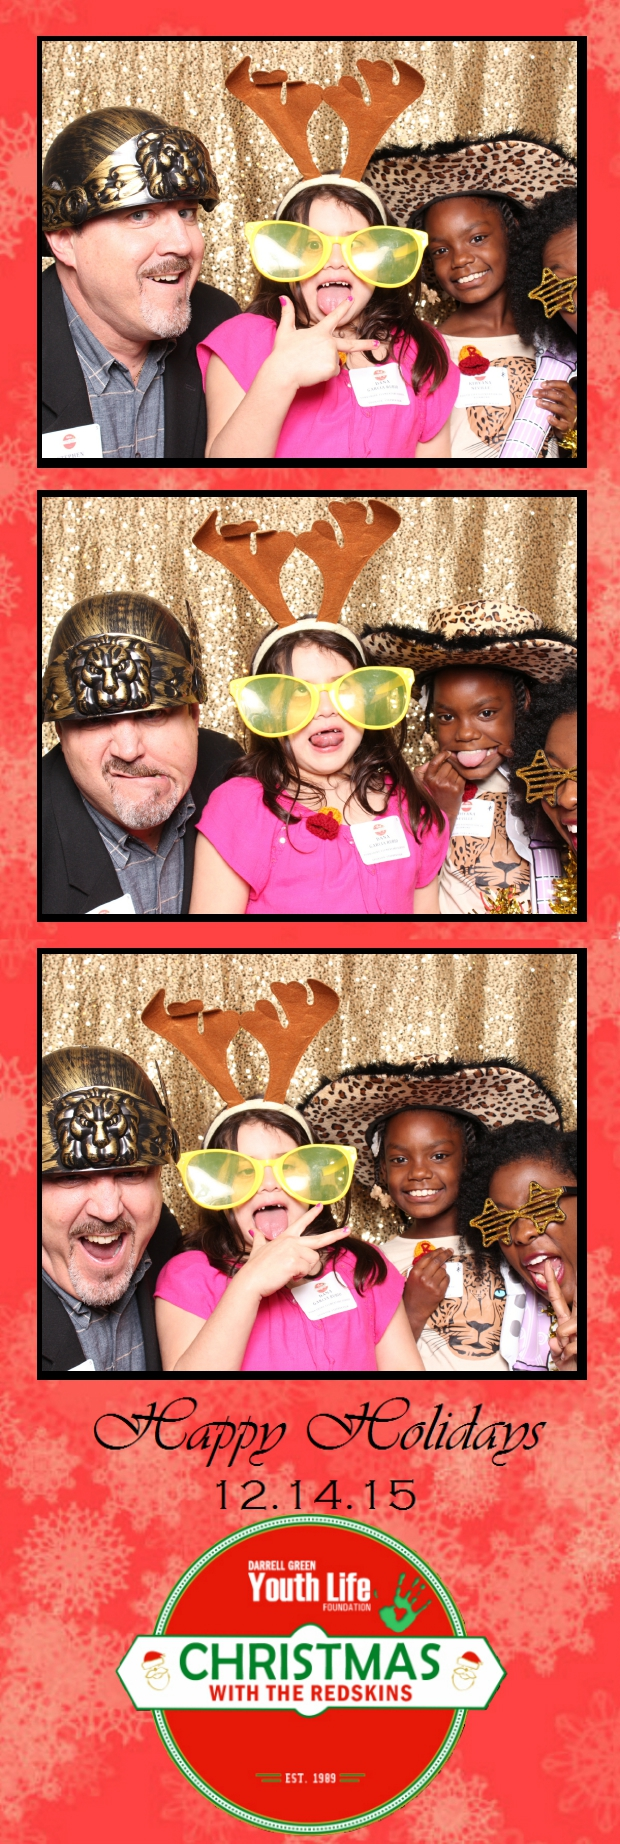 Guest House Events Photo Booth DGYLF Strips (12).jpg